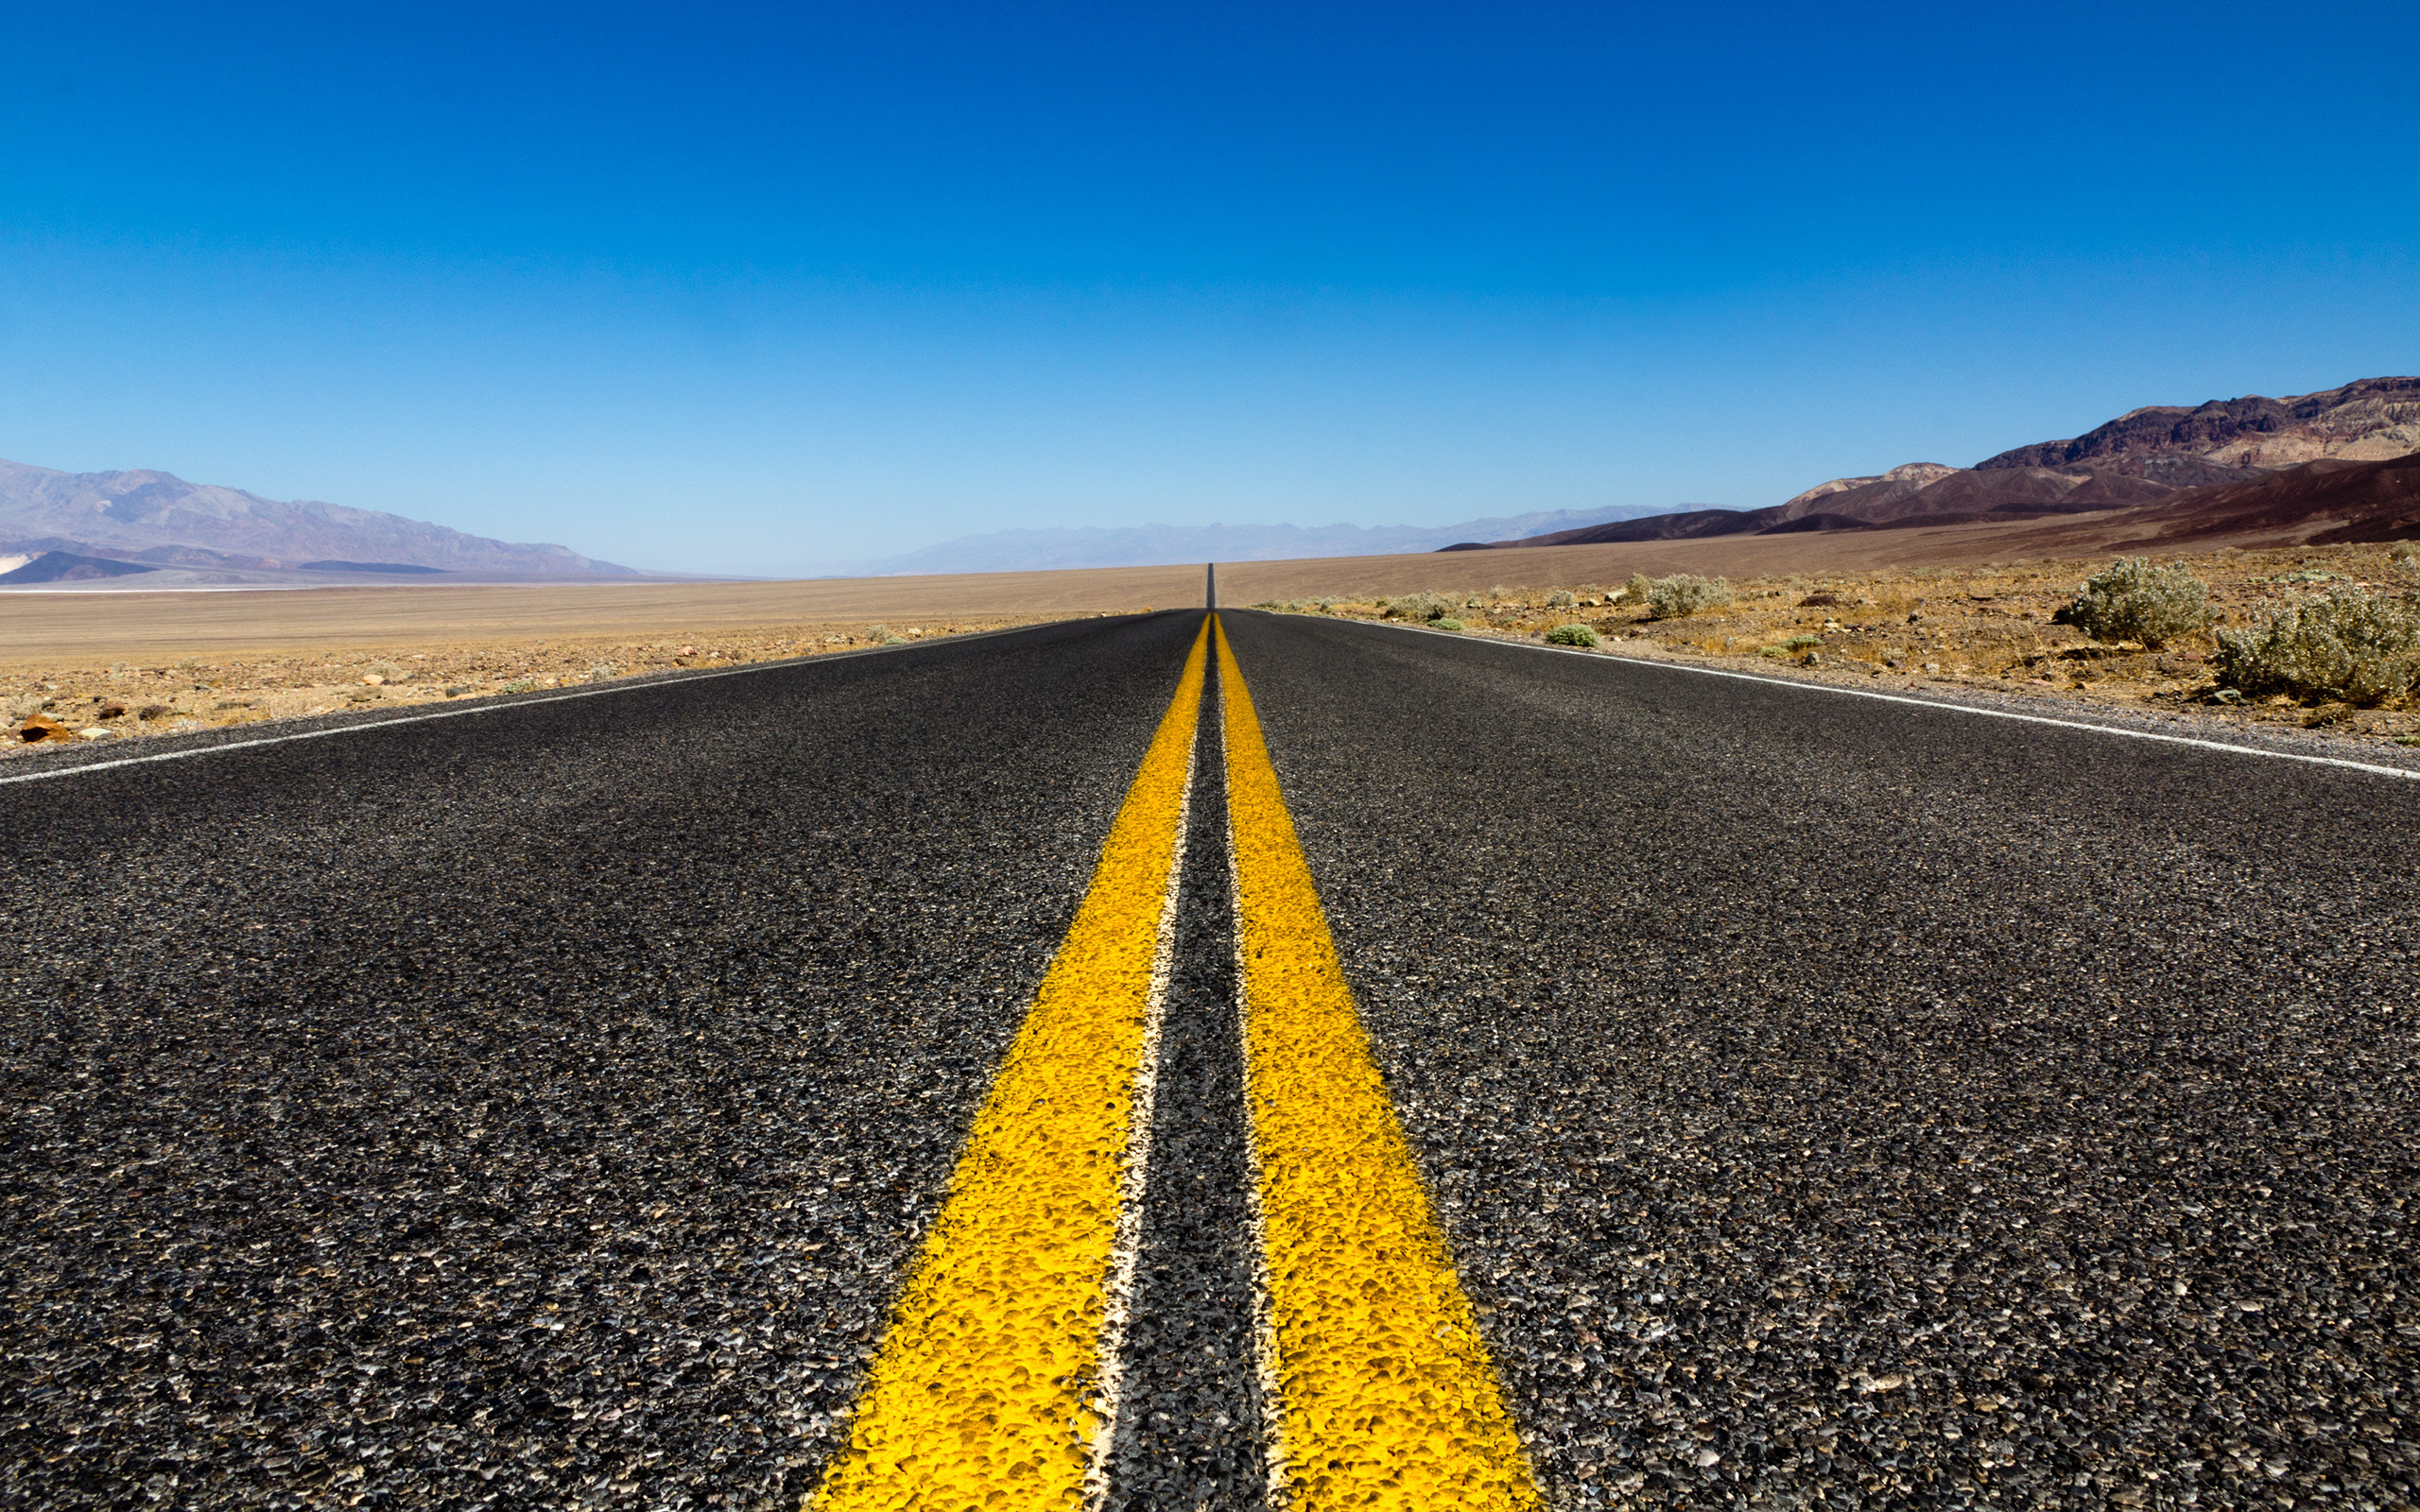 40840 download wallpaper Landscape, Roads screensavers and pictures for free